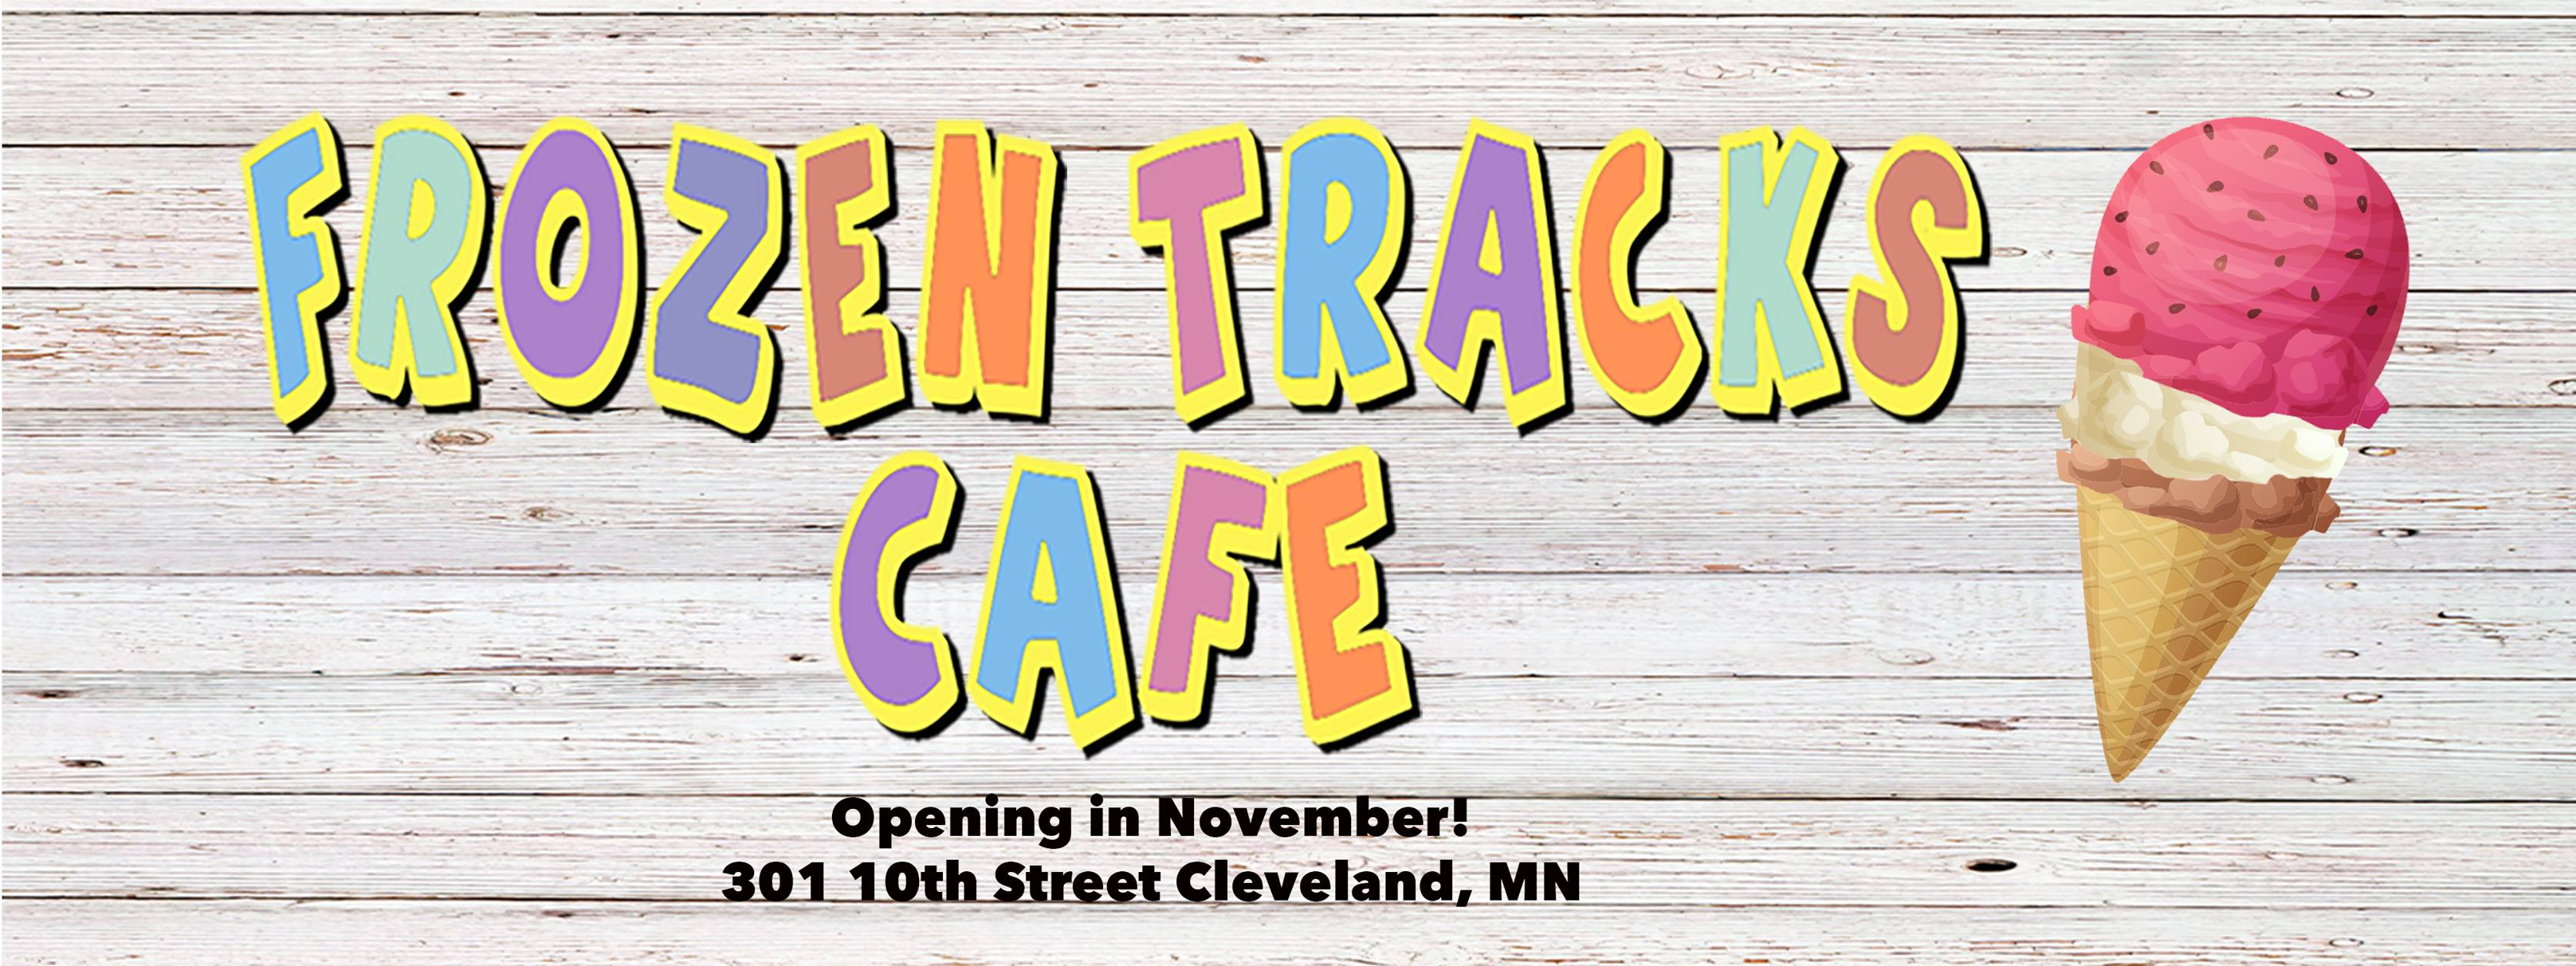 Frozen Tracks Cafe Intro Photo